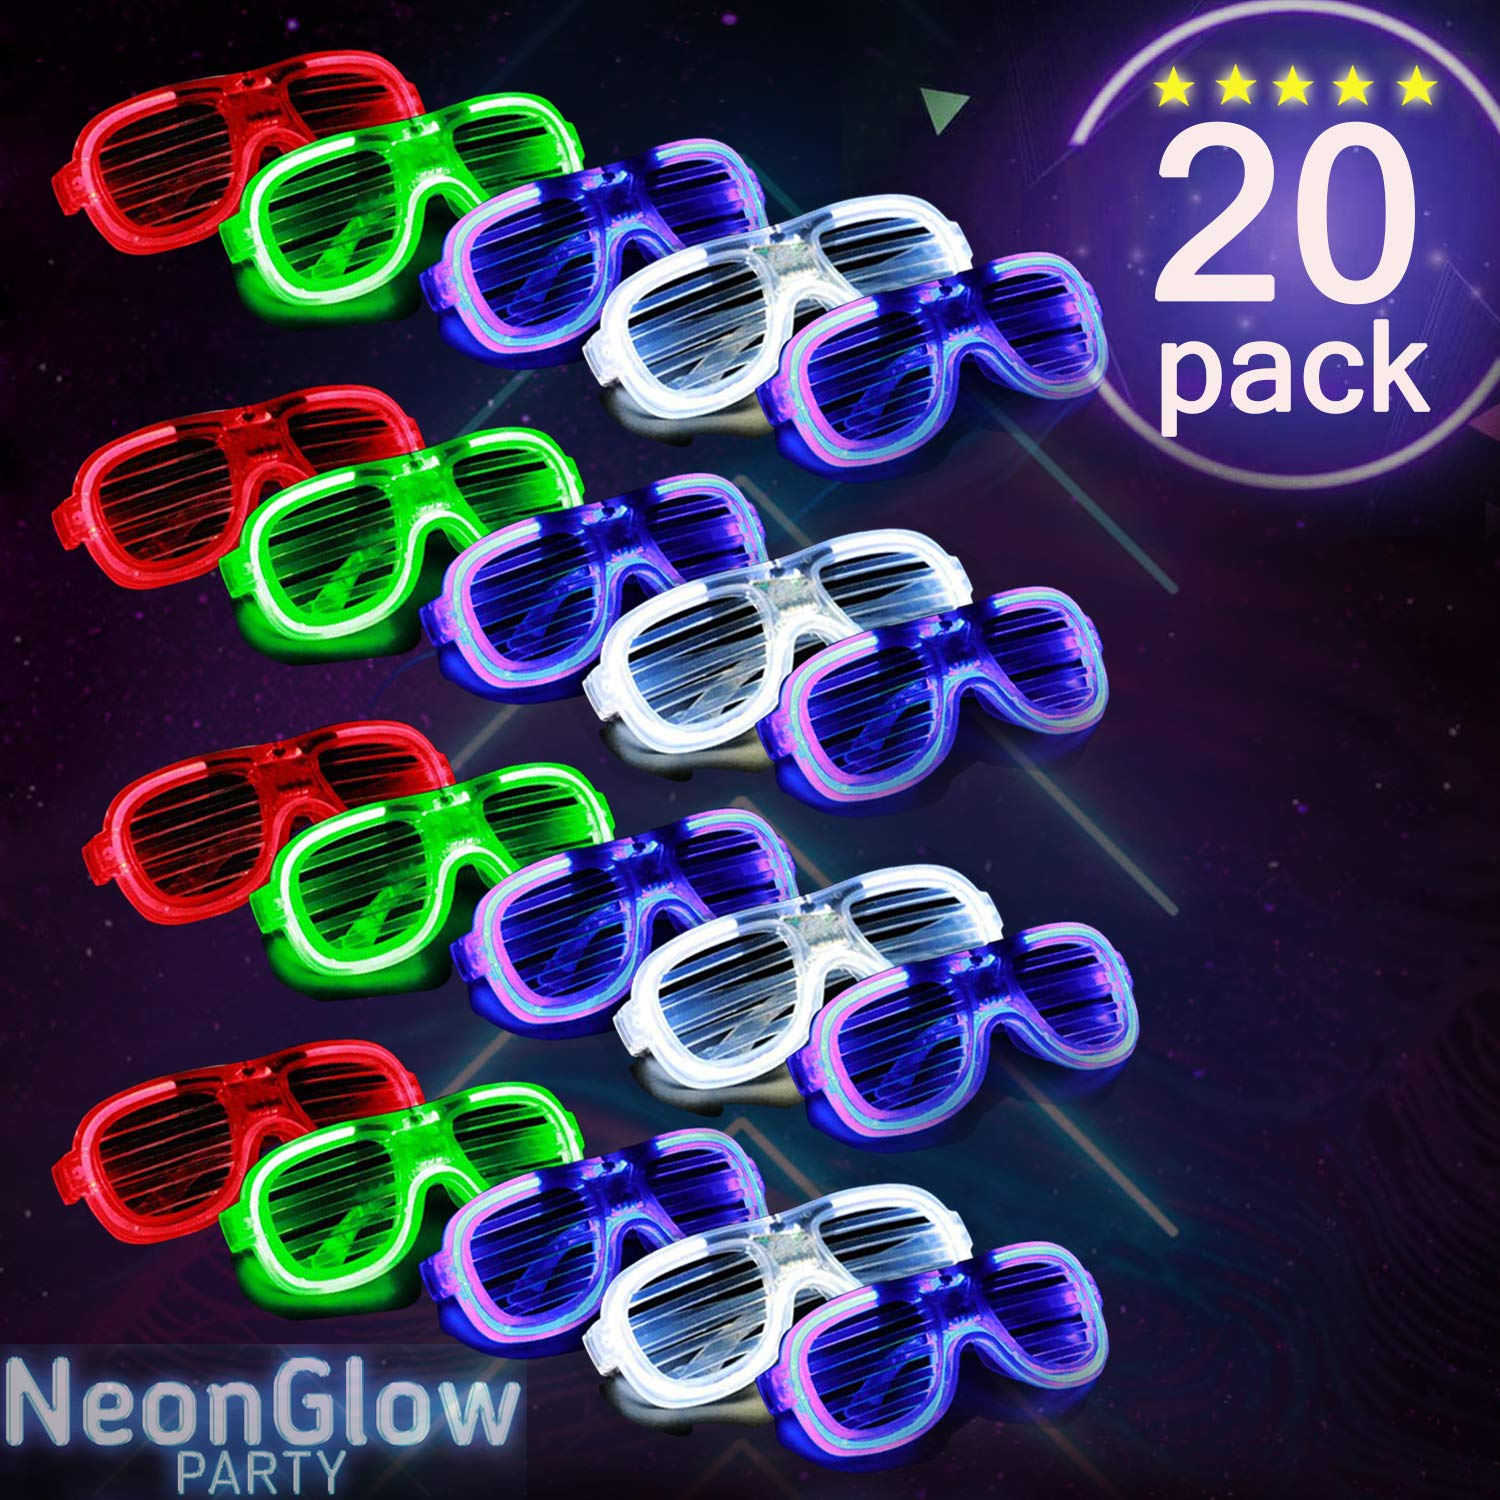 2019 IDNA LED Glasses,Neon Party Supplies 20 Pack Light Up Glasses,4 Color LED Sunglasses Shutter Shades Light Up Plastic Shutter Shades for Adults Kids Glow in The Dark Party Favors Rave Party